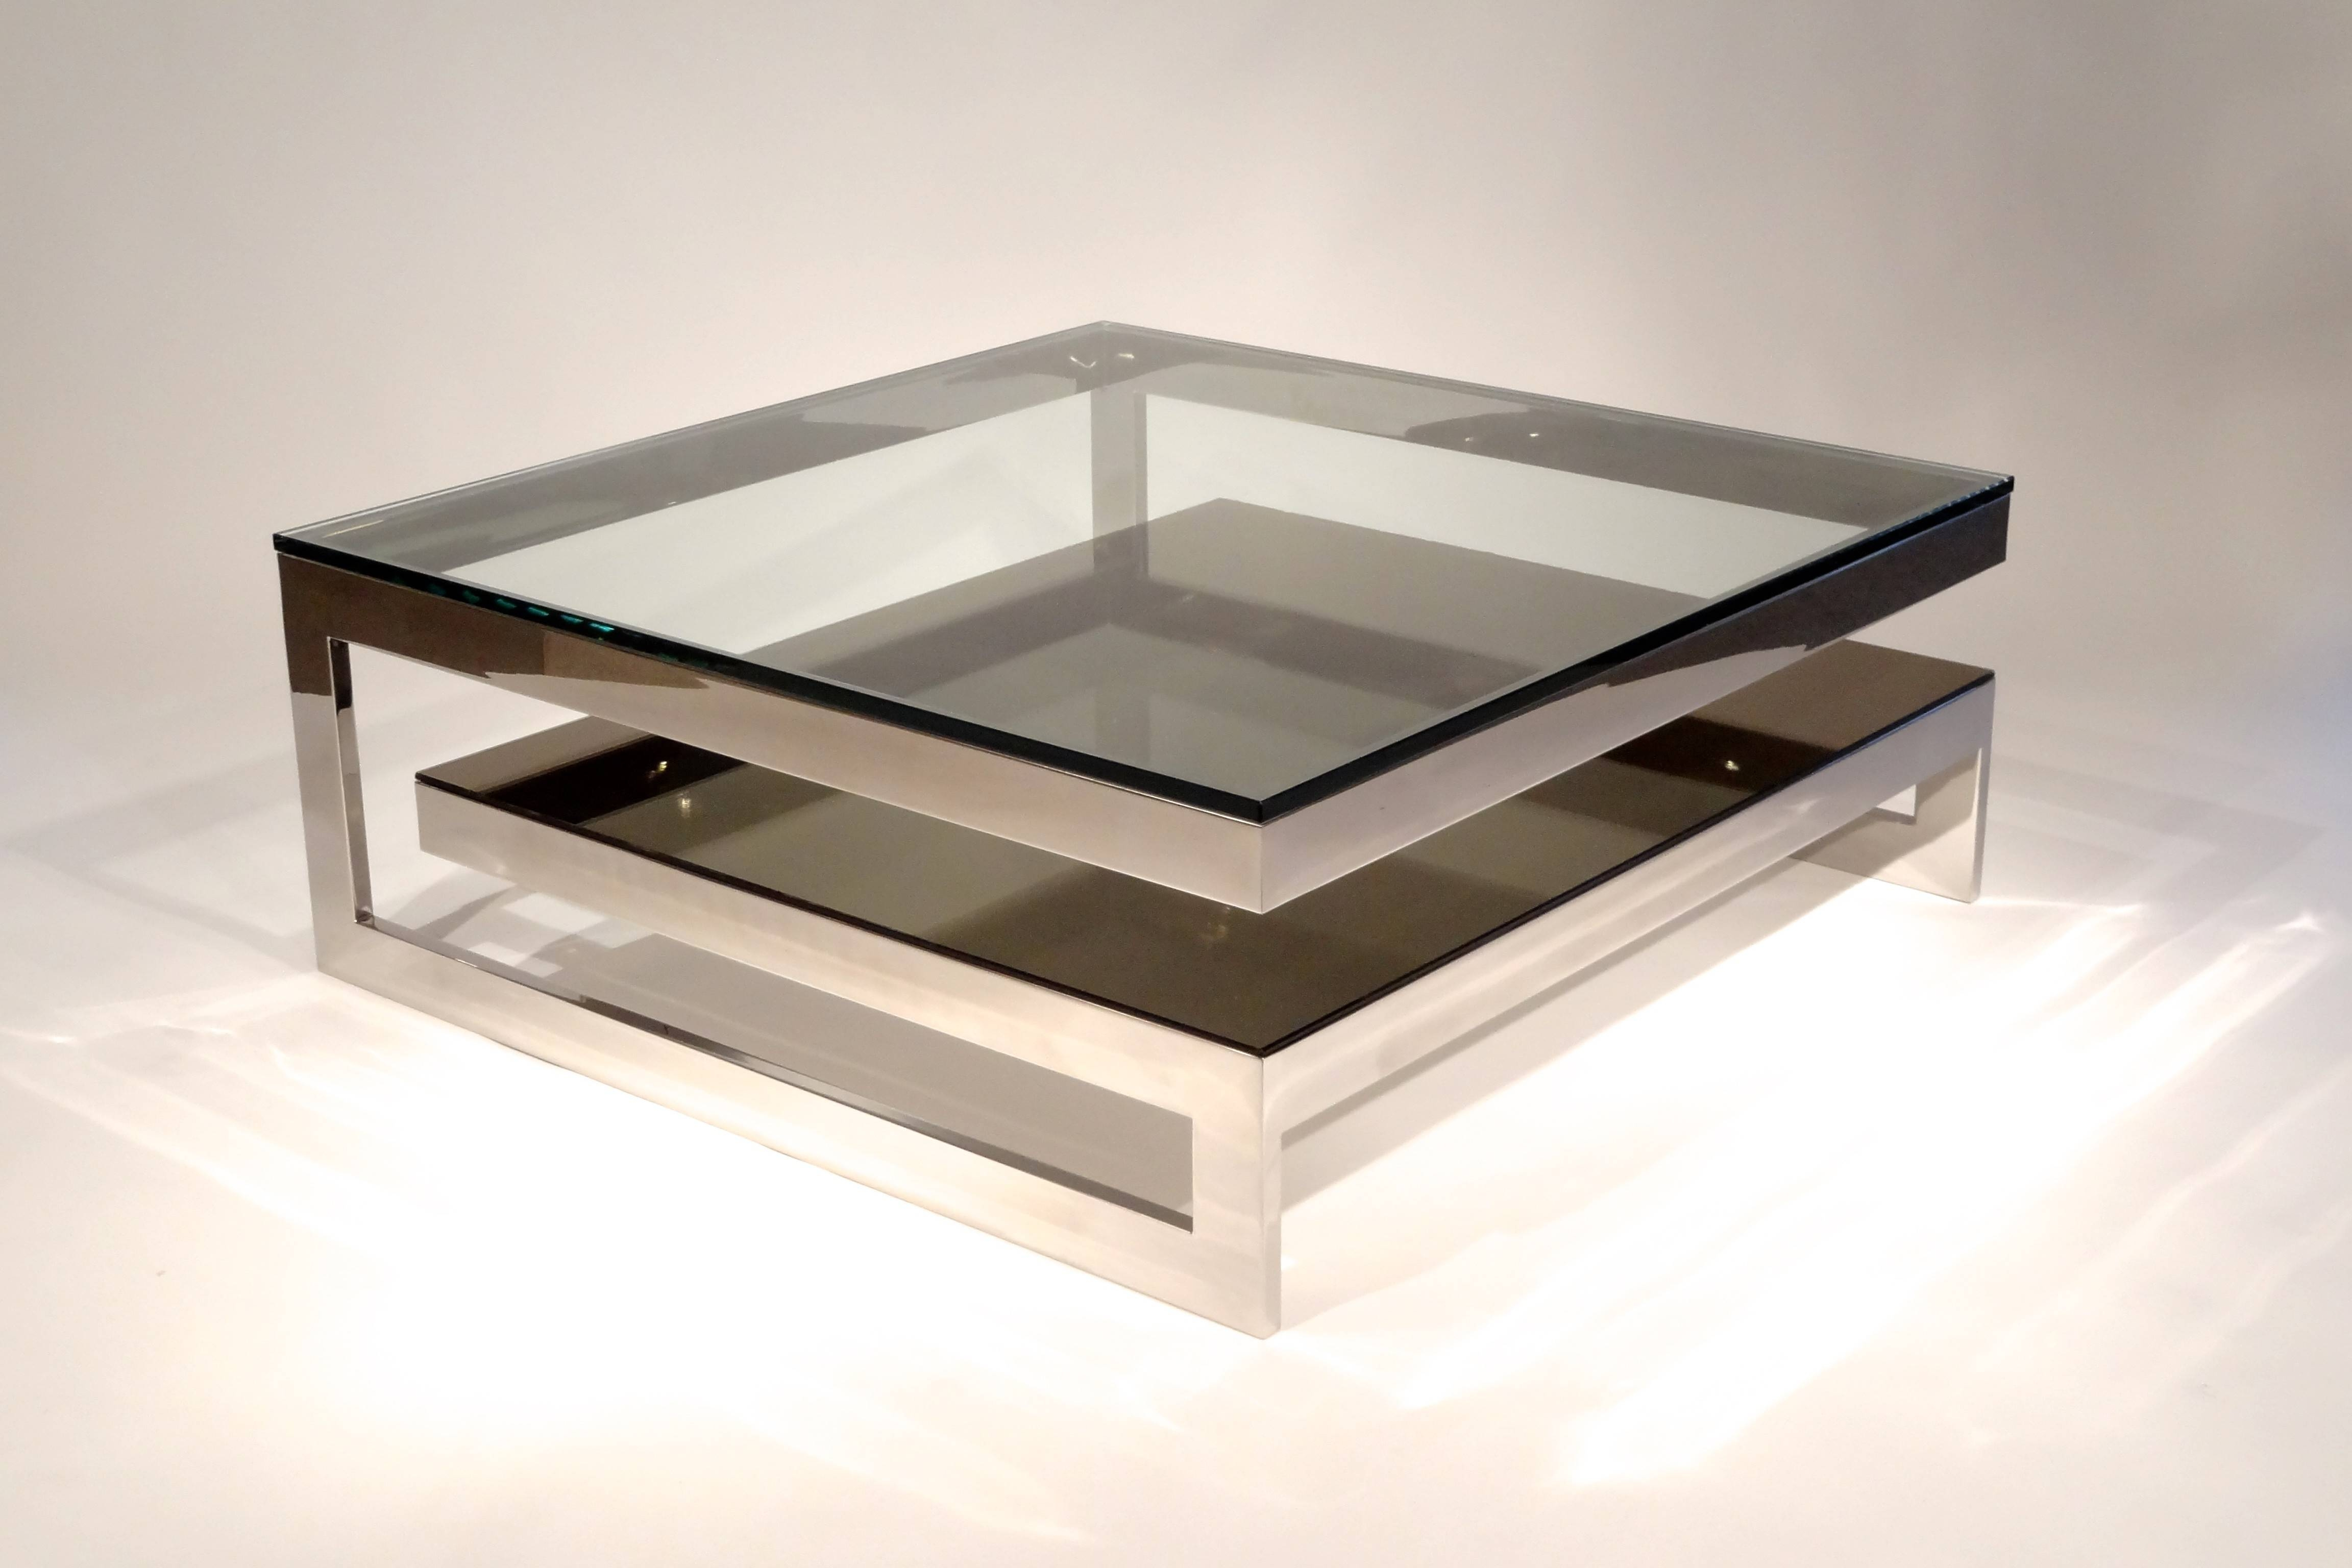 Sturdy Modern Glass Coffee Table Metal Legs Construction 4 Legs With Regard To Chrome And Glass Coffee Tables (View 25 of 30)